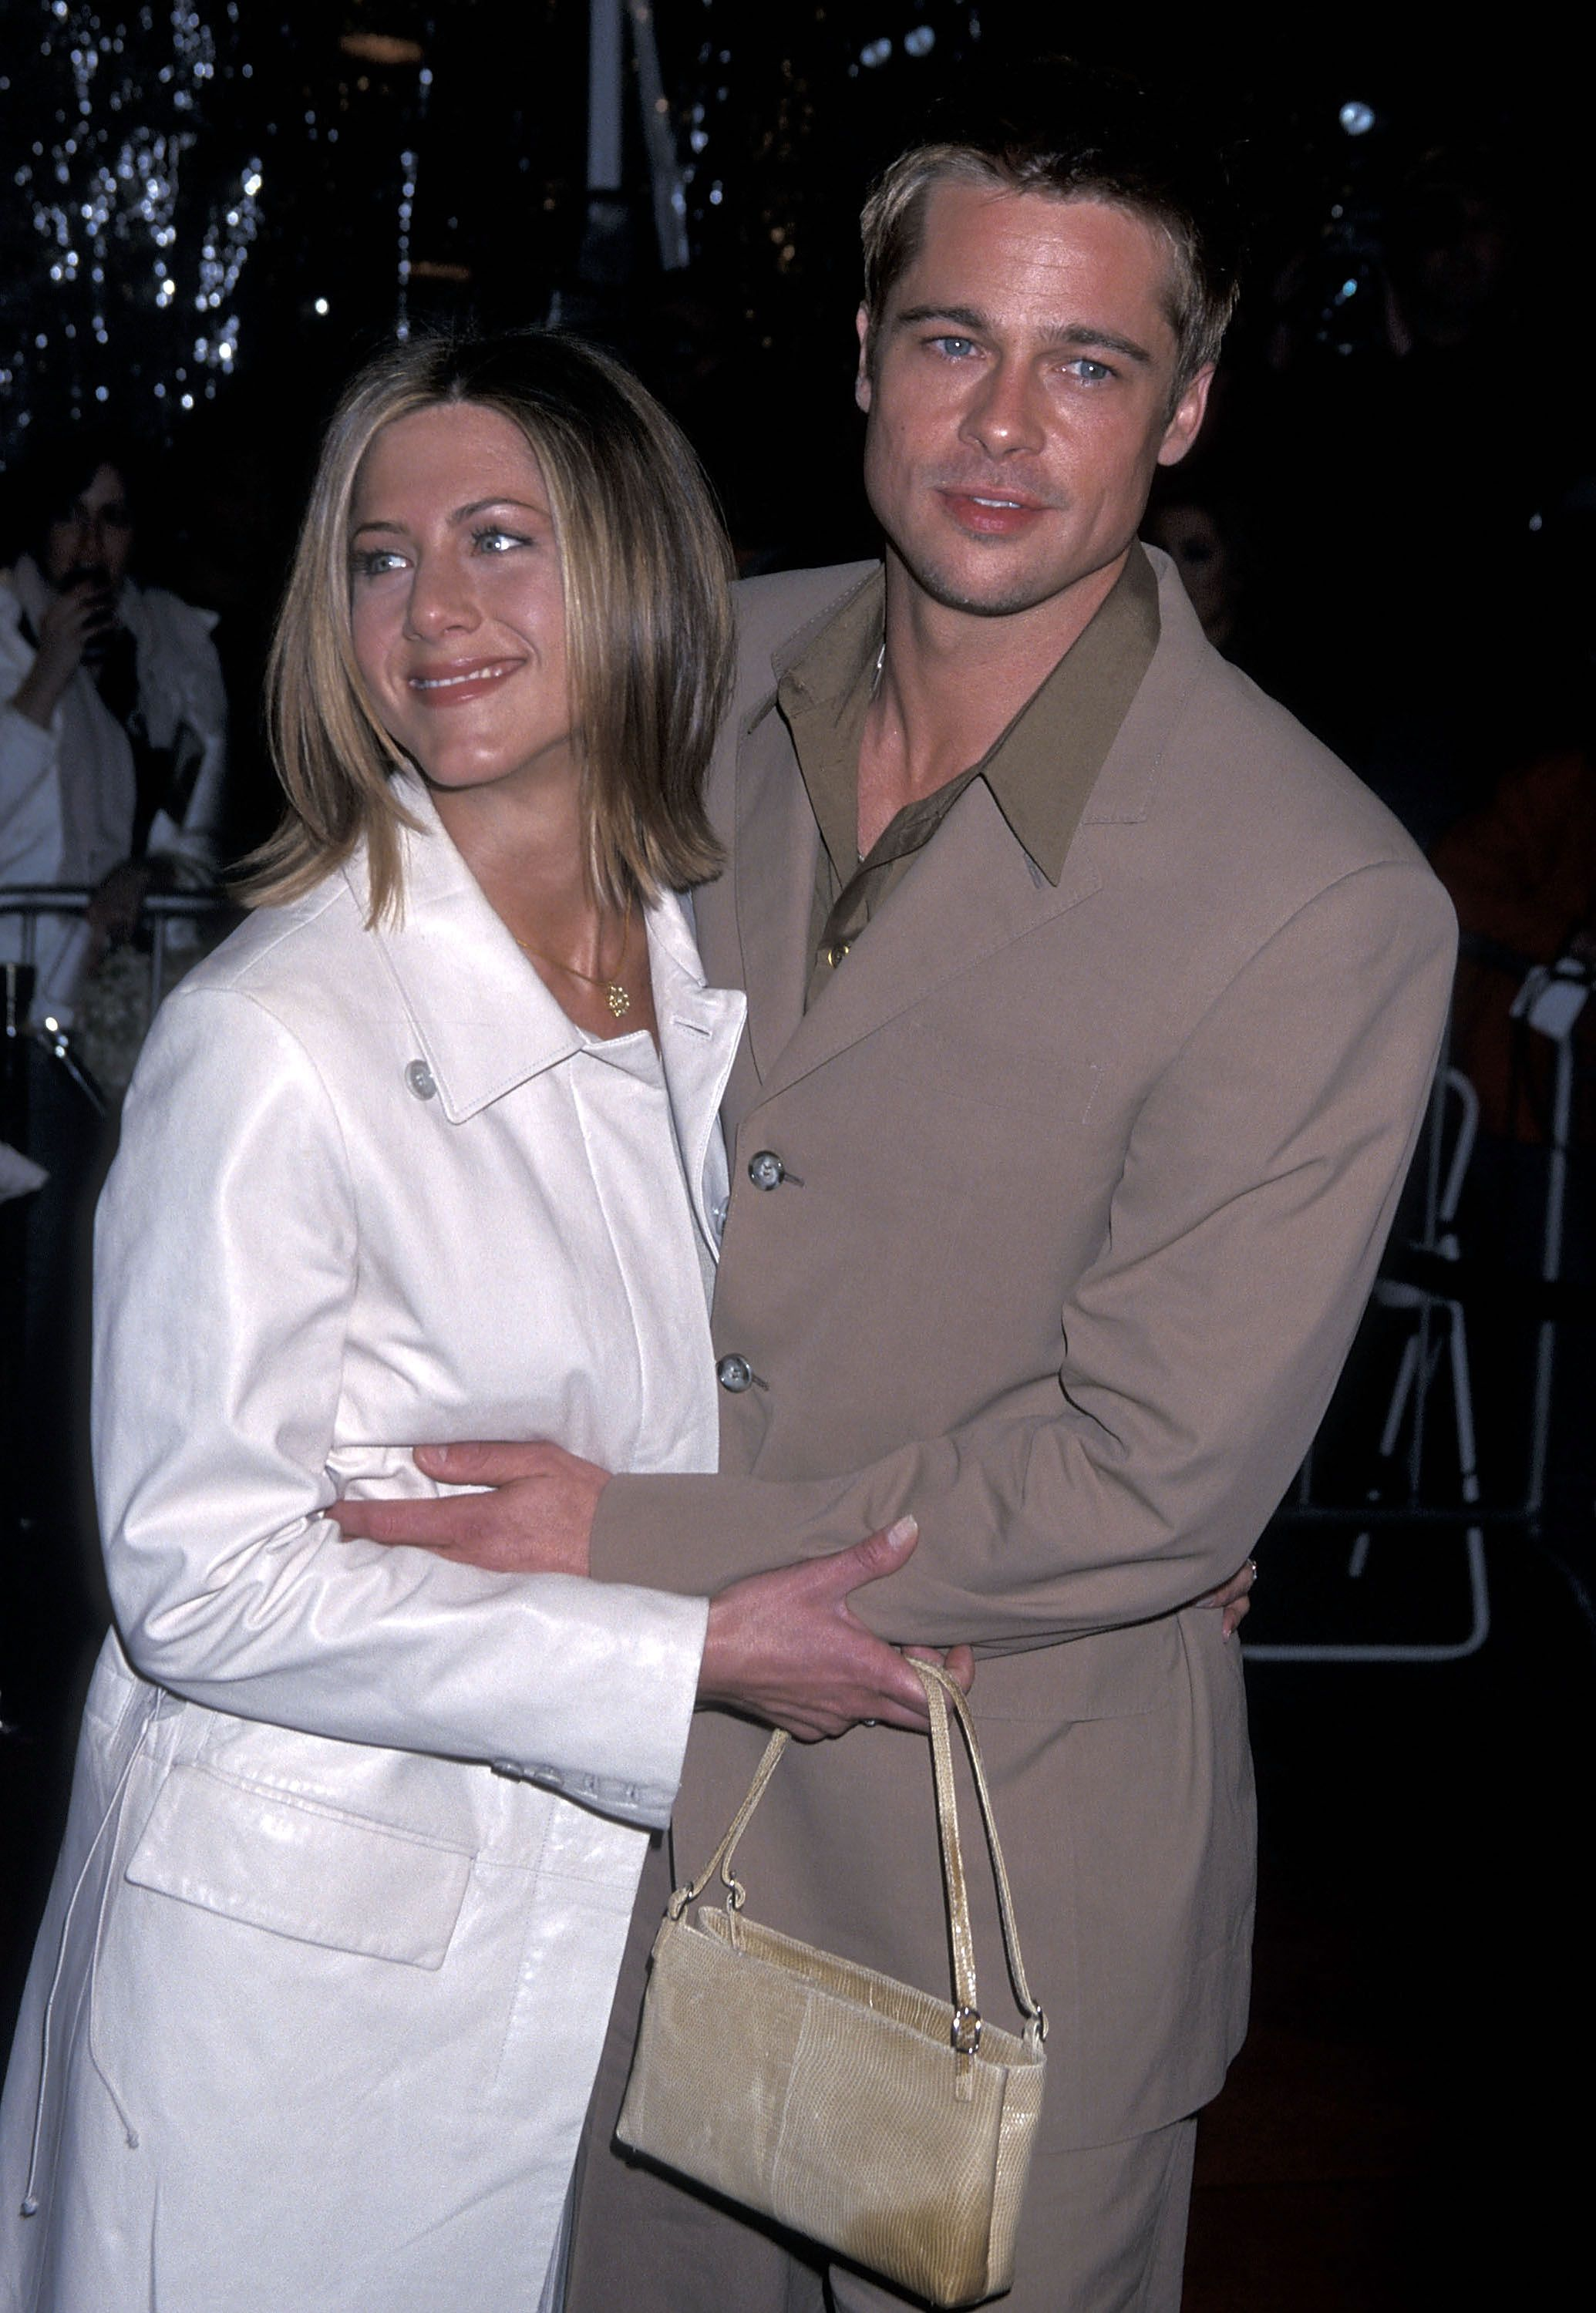 Brad Pitt Went To His Ex Wife Jennifer Aniston S Holiday Party And Stayed Late